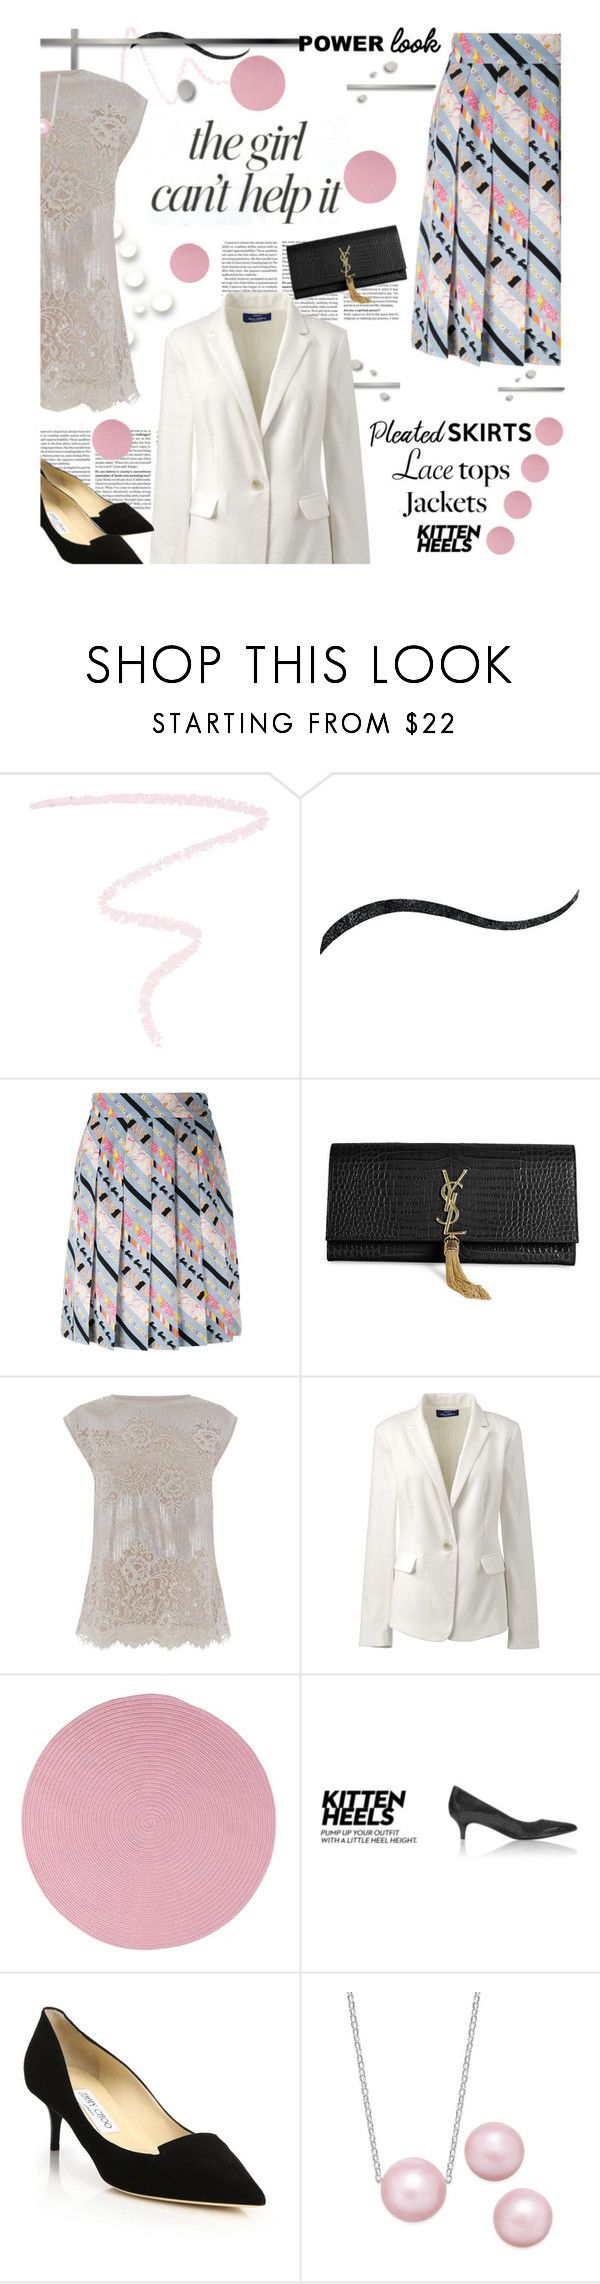 """""""Oops, Missed the Contest, but My Power Look is Real!"""" by lavendergal ❤ liked on Polyvore featuring Marc Jacobs, Stila, Jennifer Lopez, Yves Saint Laurent, Oasis, Lands' End, Colonial Mills and Jimmy Choo"""